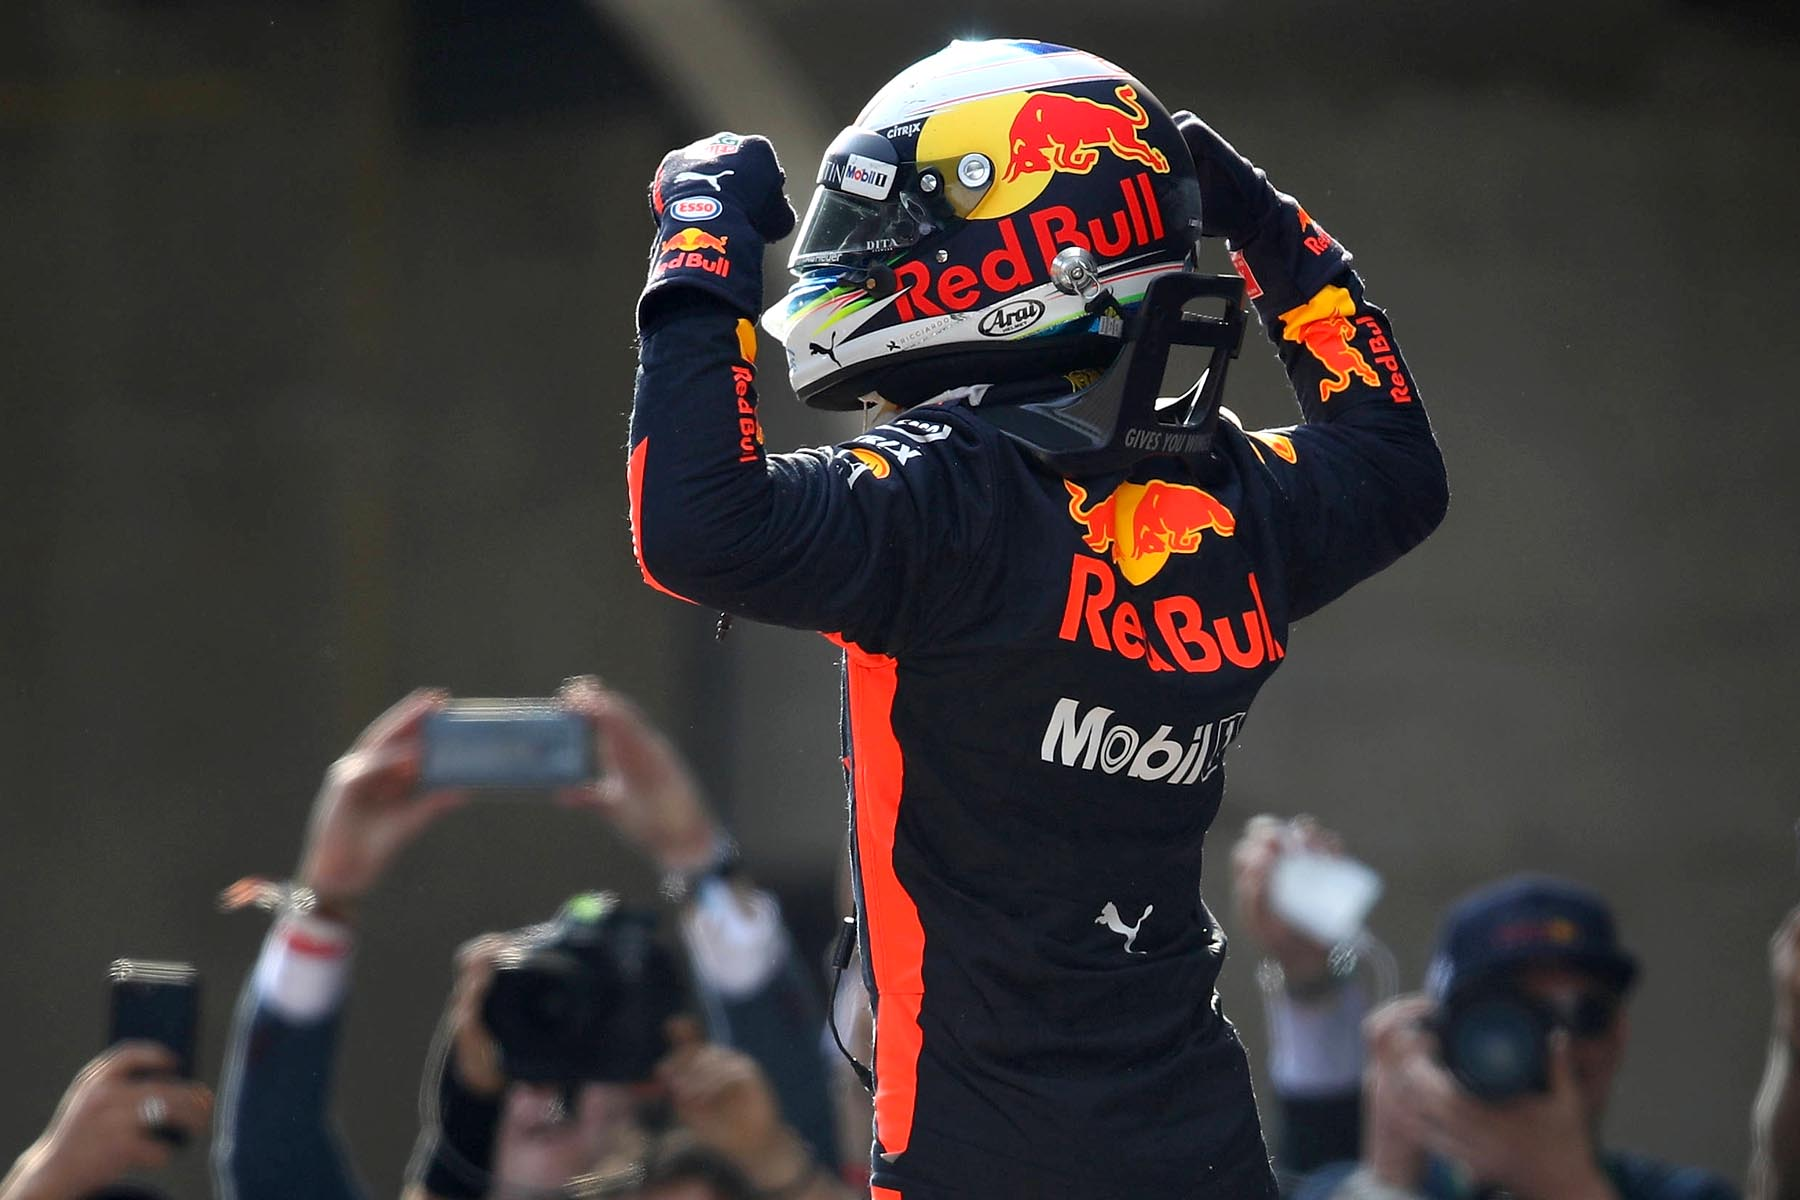 Daniel Ricciardo celebrates winning the 2018 Chinese Grand Prix.